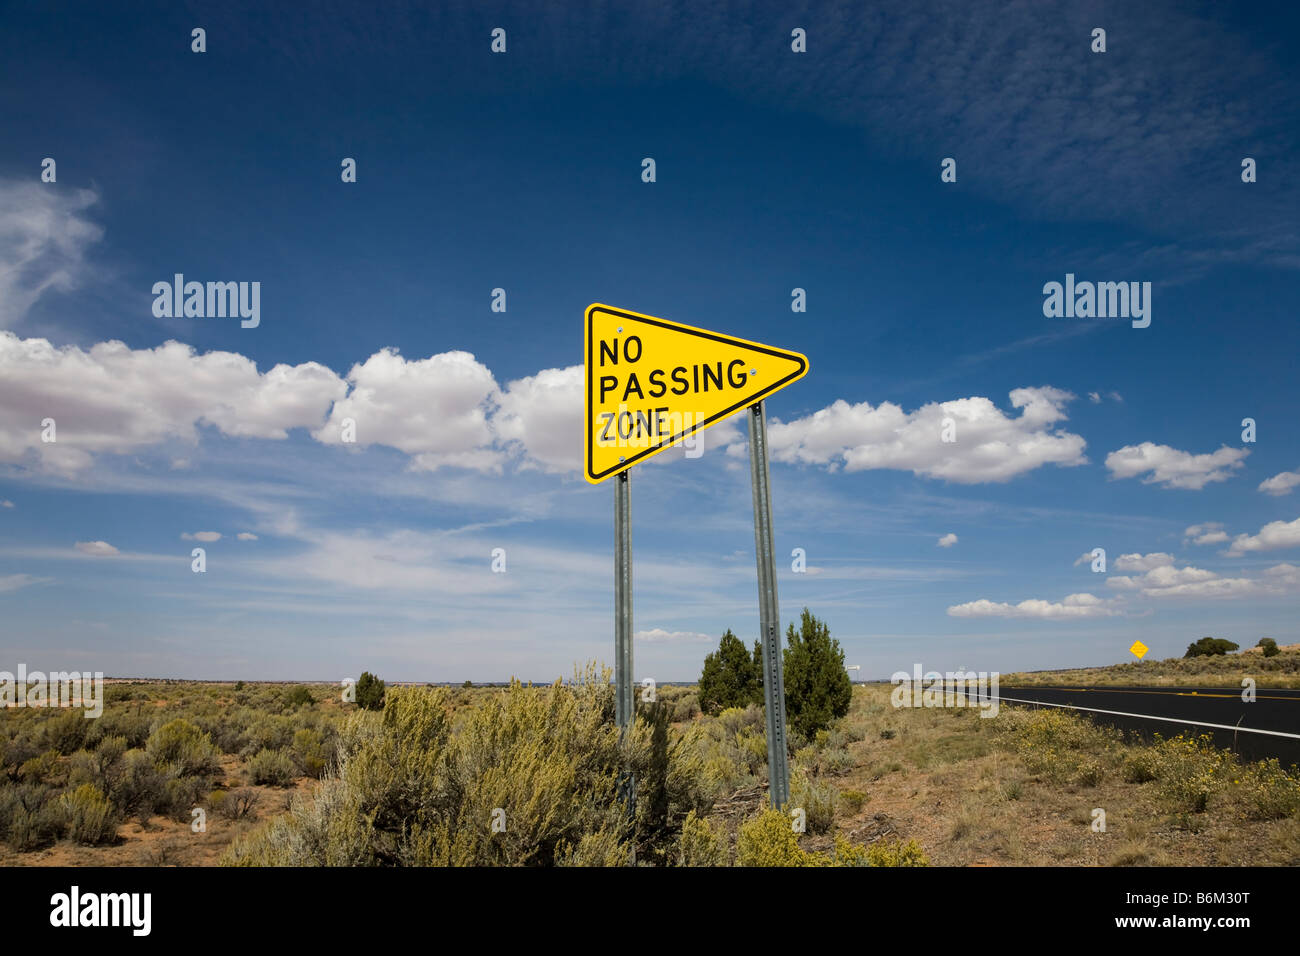 Road sign no passing zone, USA - Stock Image